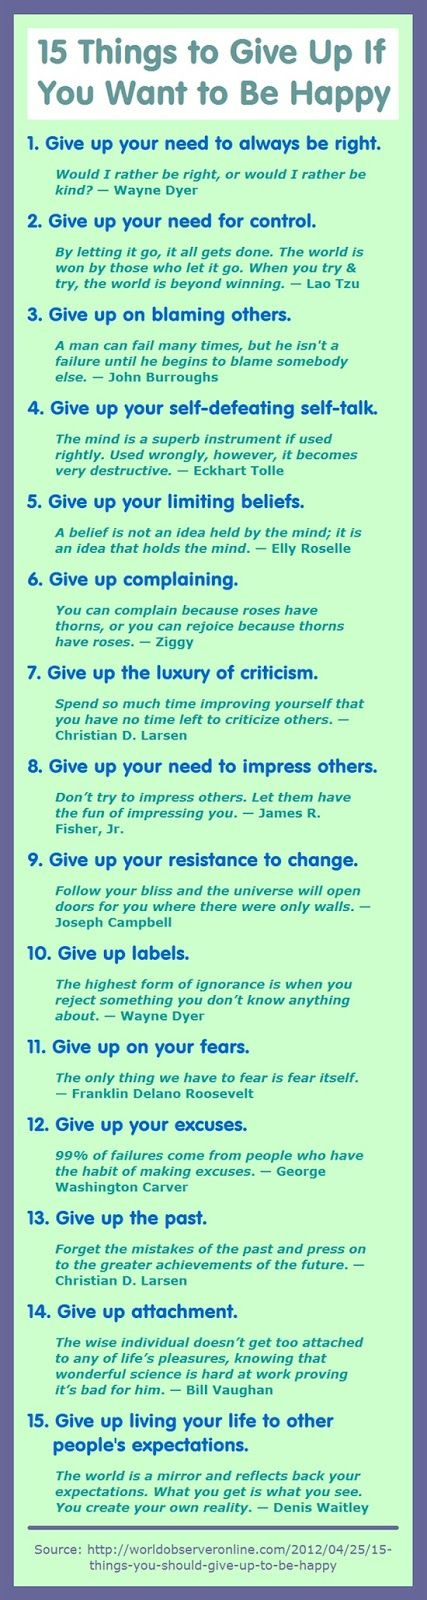 15 things to give up if you want to be happy..: